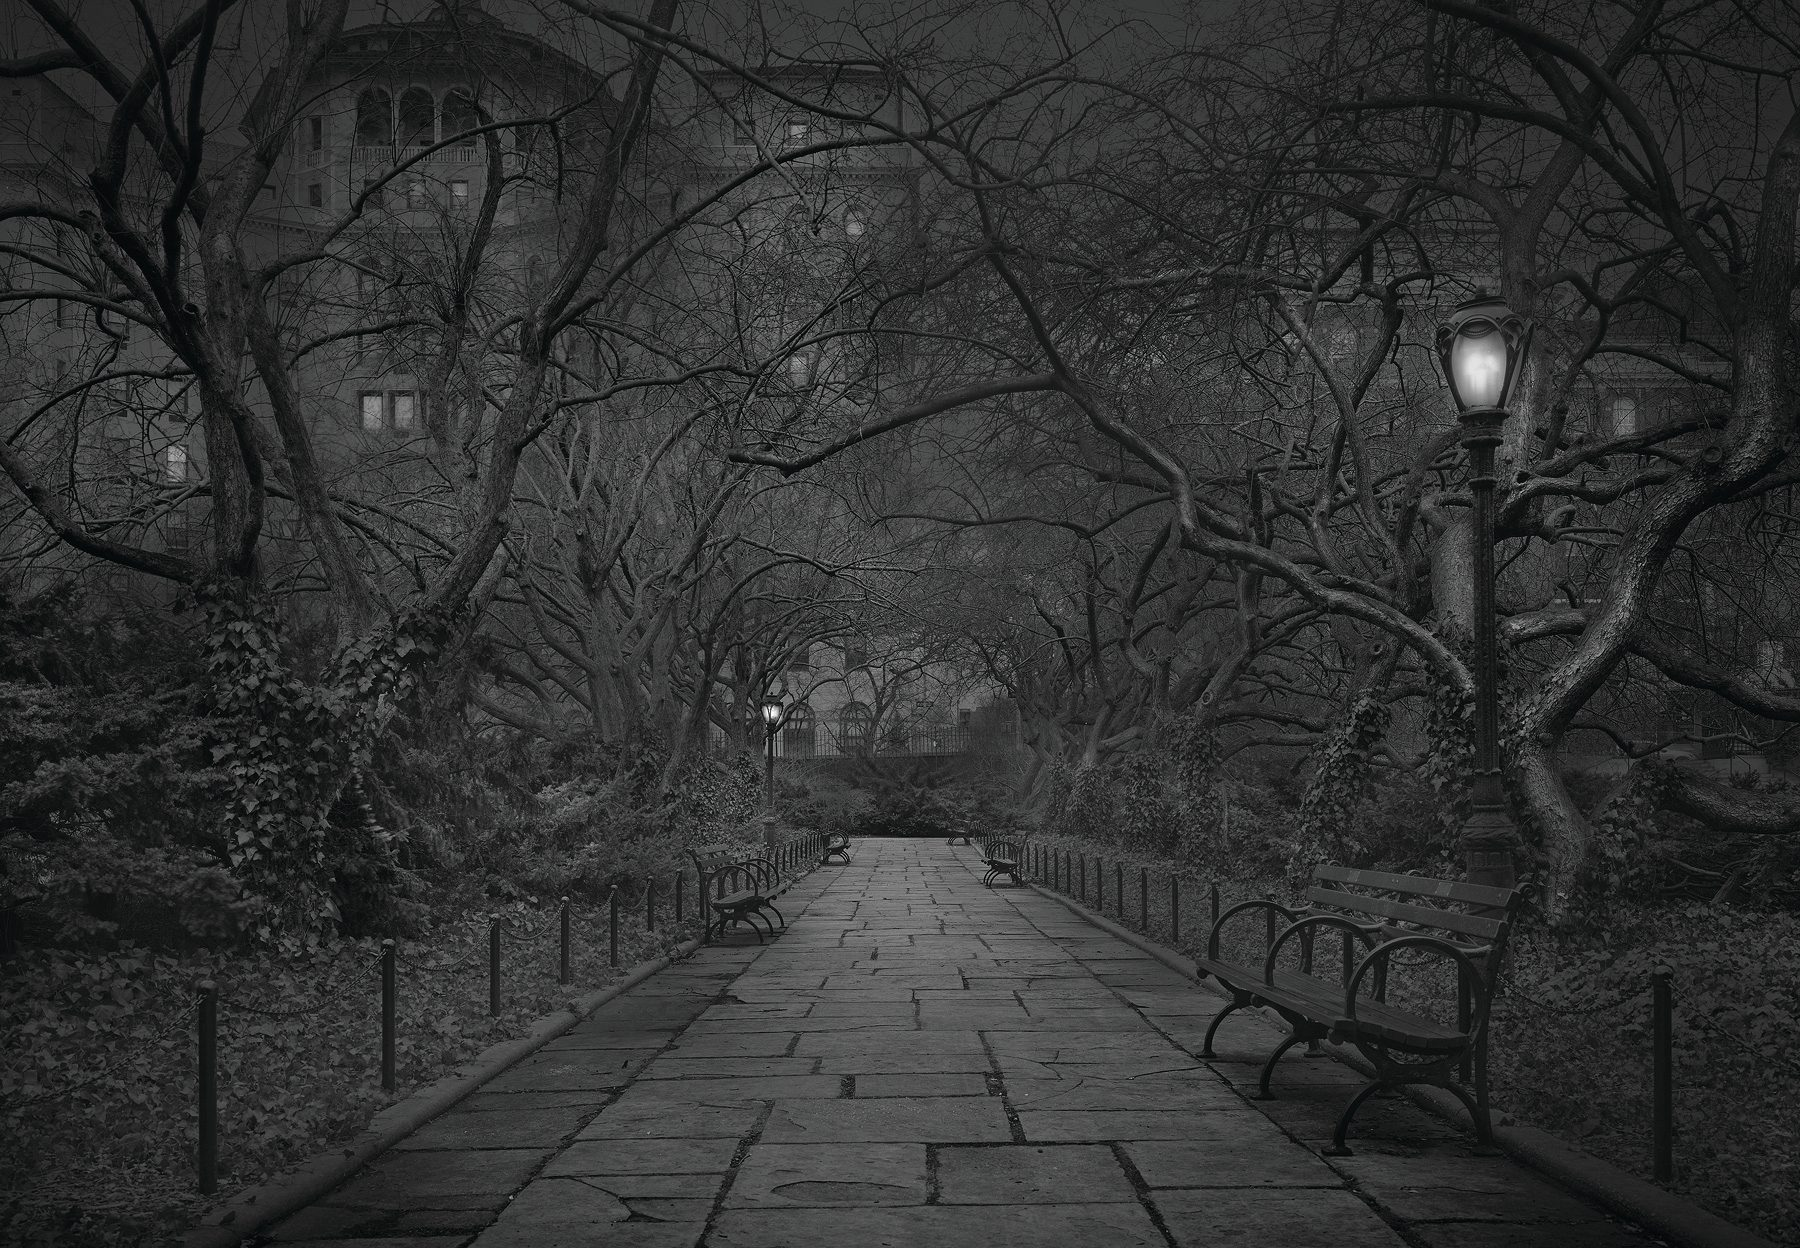 Deep In A Dream - Central Park - Private Gardens